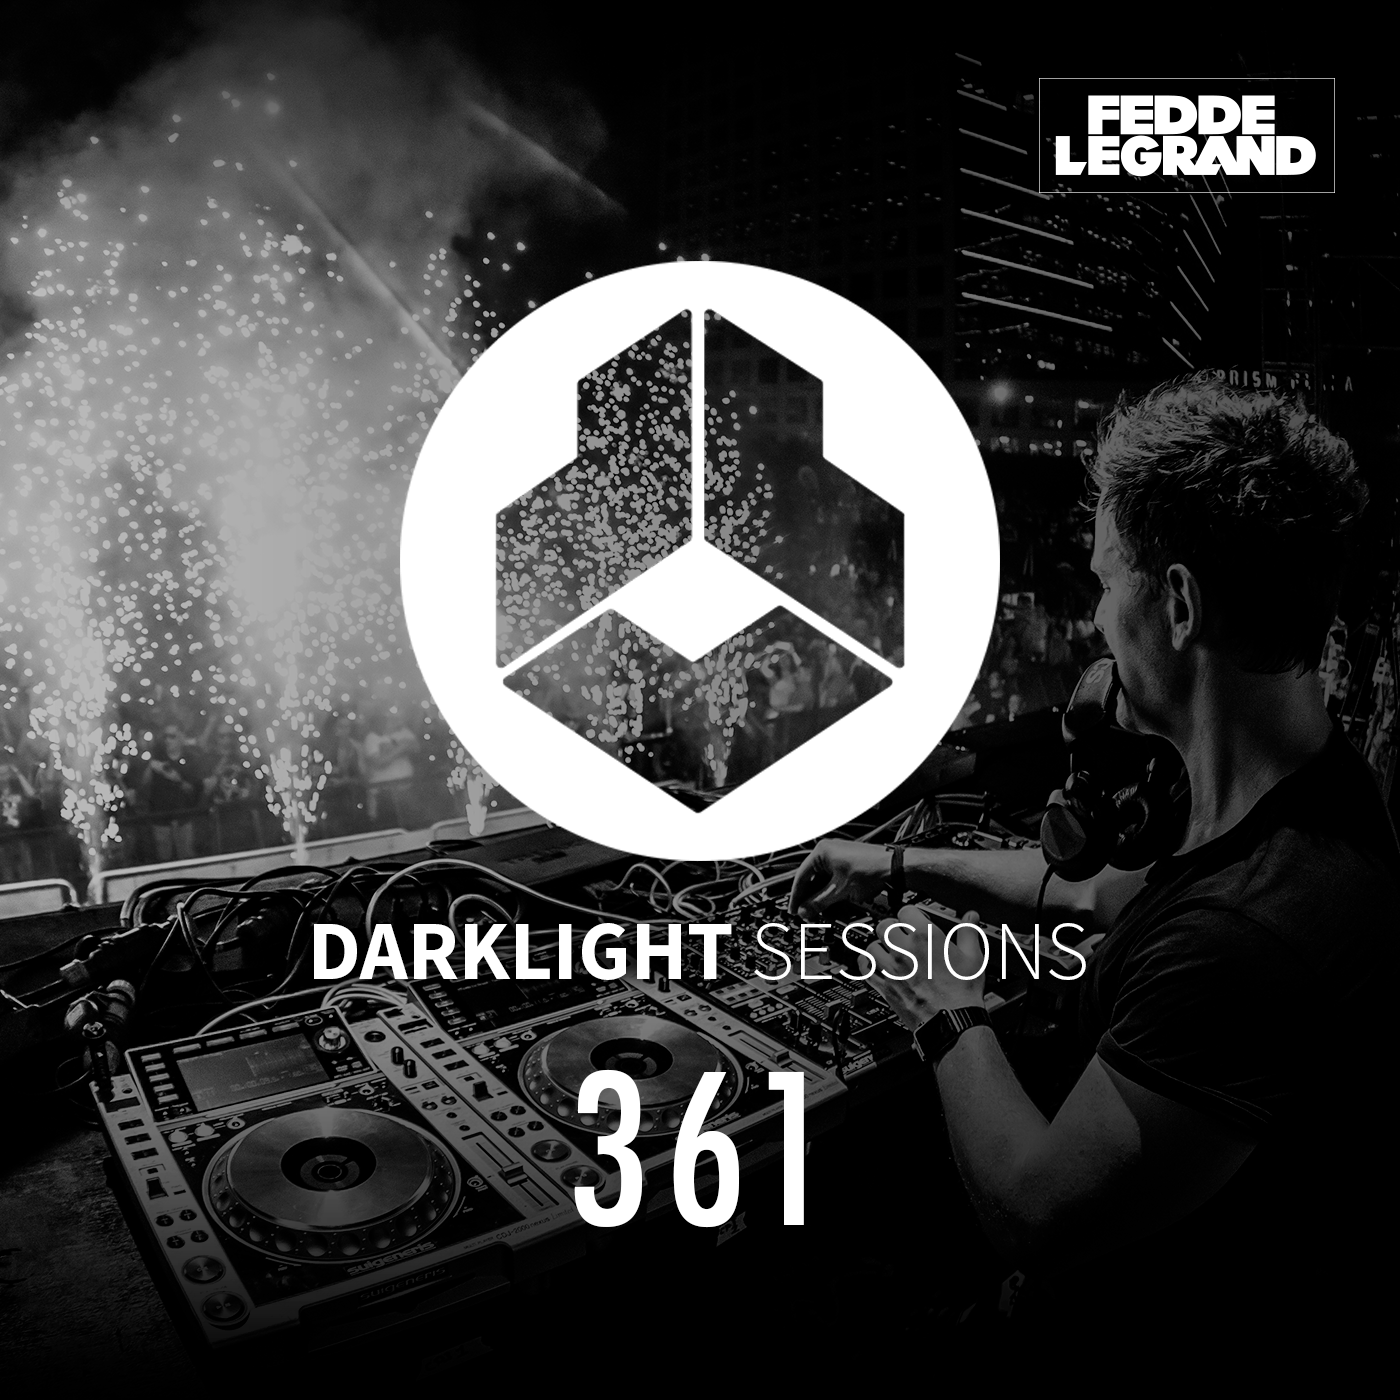 Darklight Sessions 361